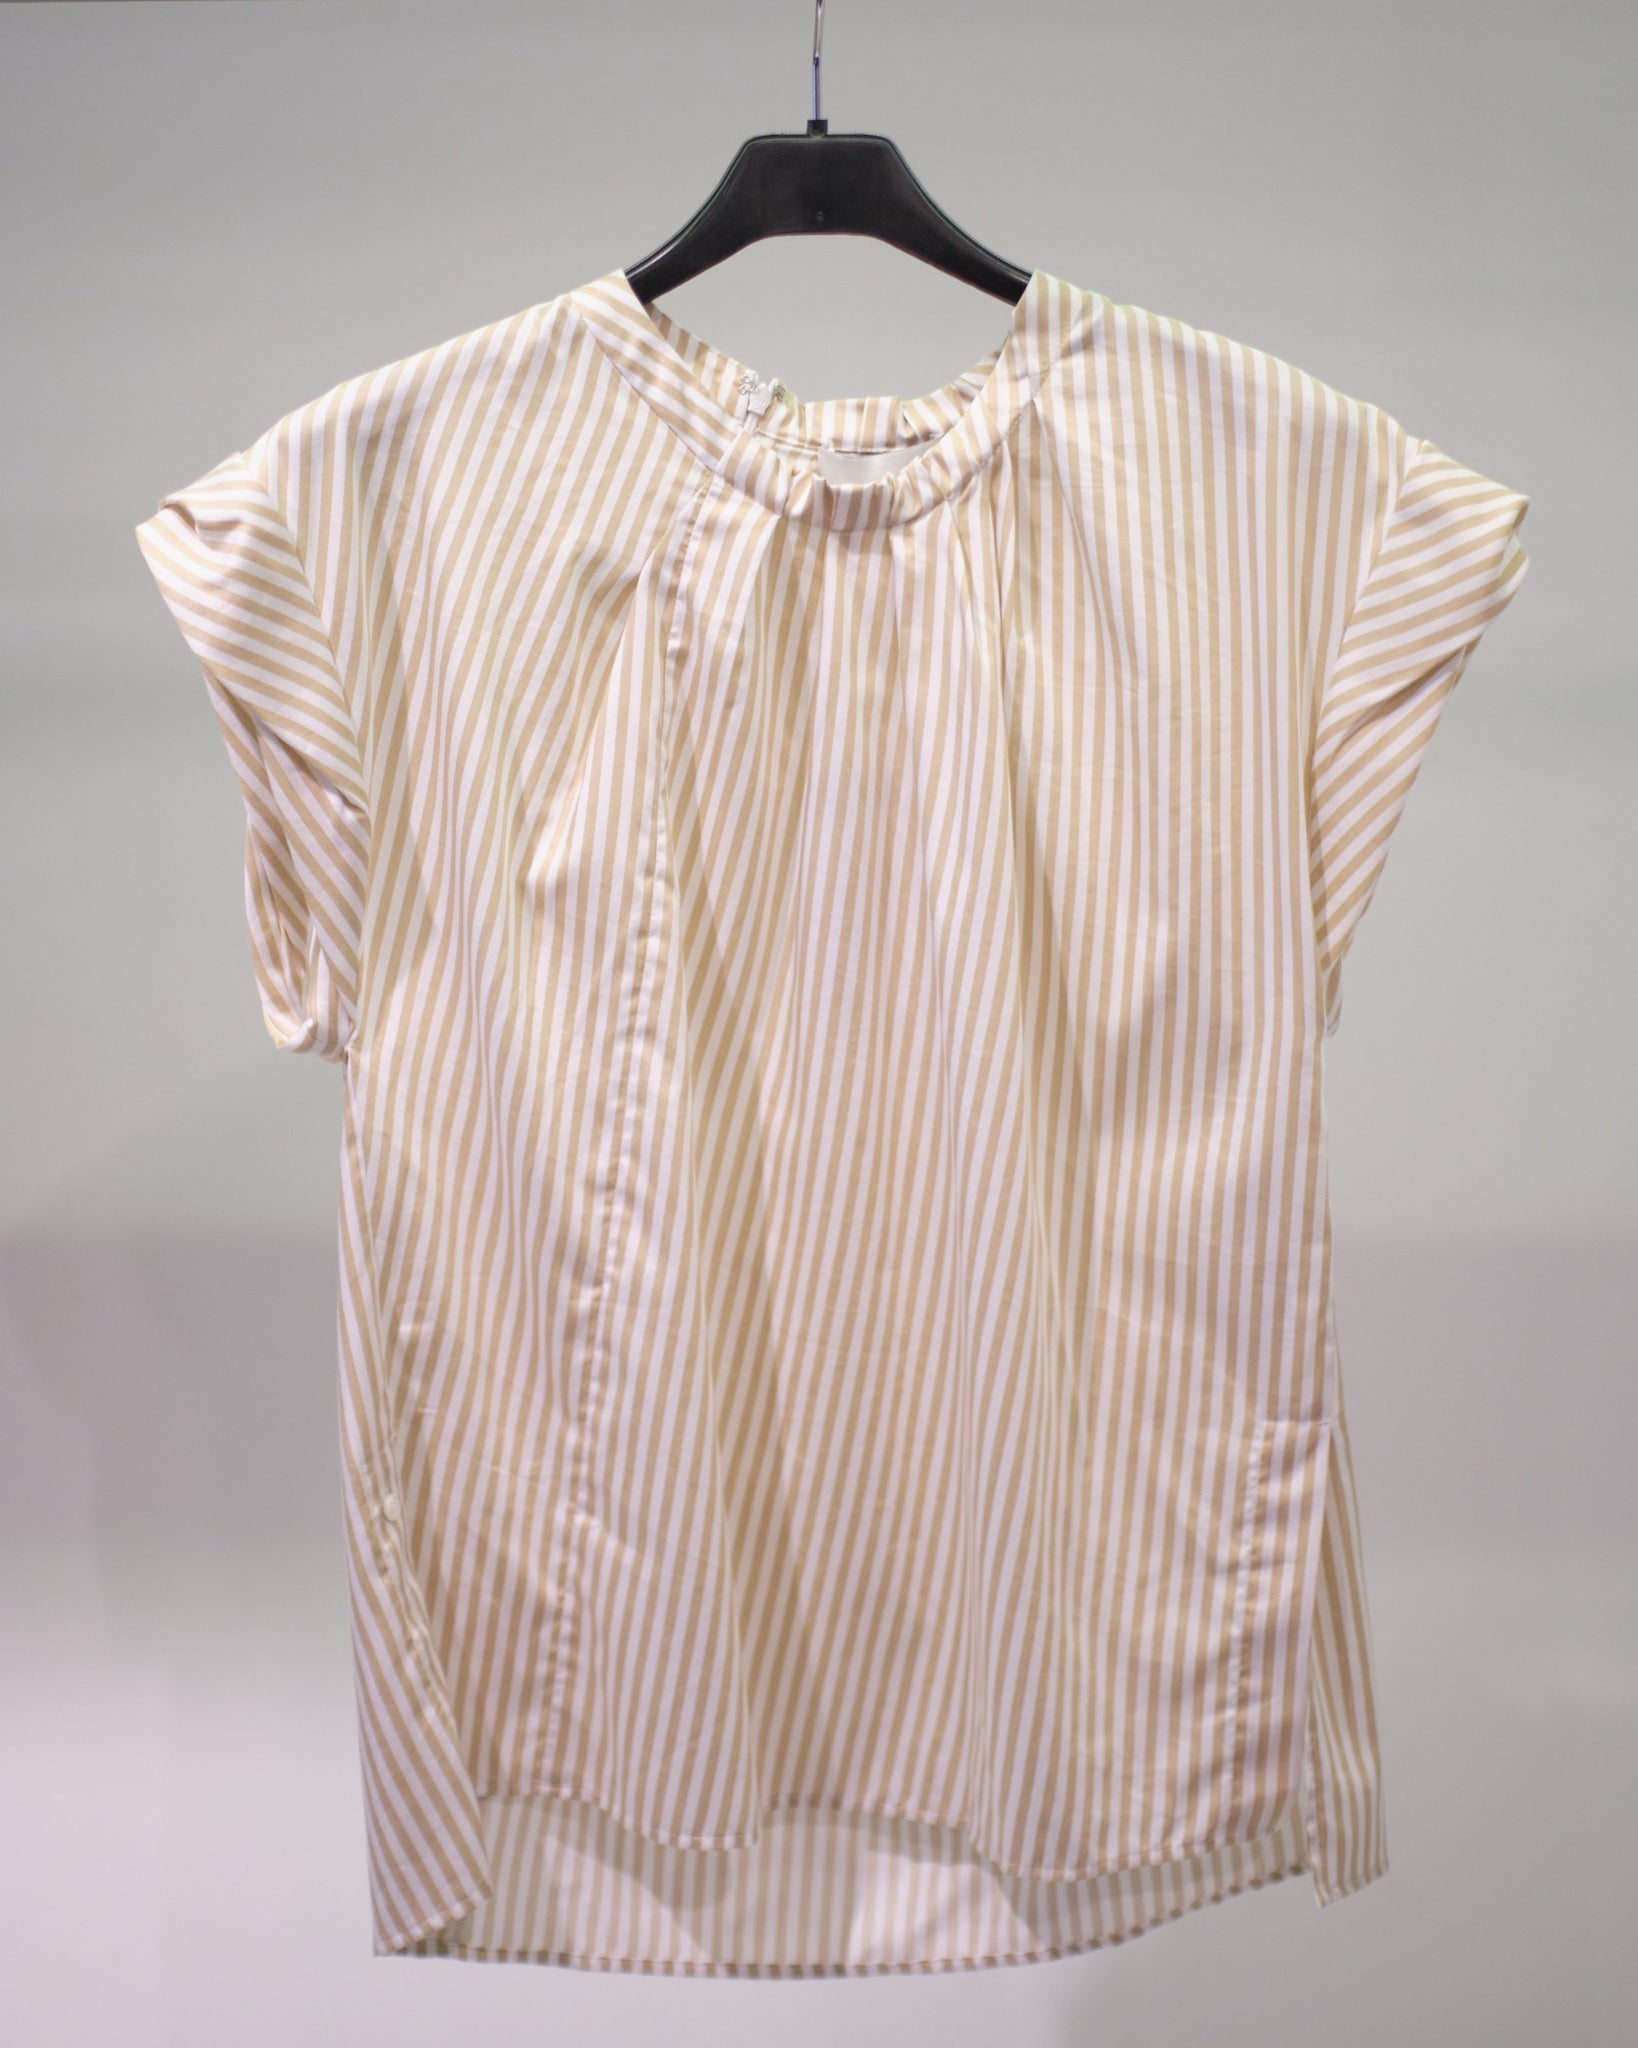 3.1 PHILLIP LIM S/S STRIPED TWISTED NECK TOP